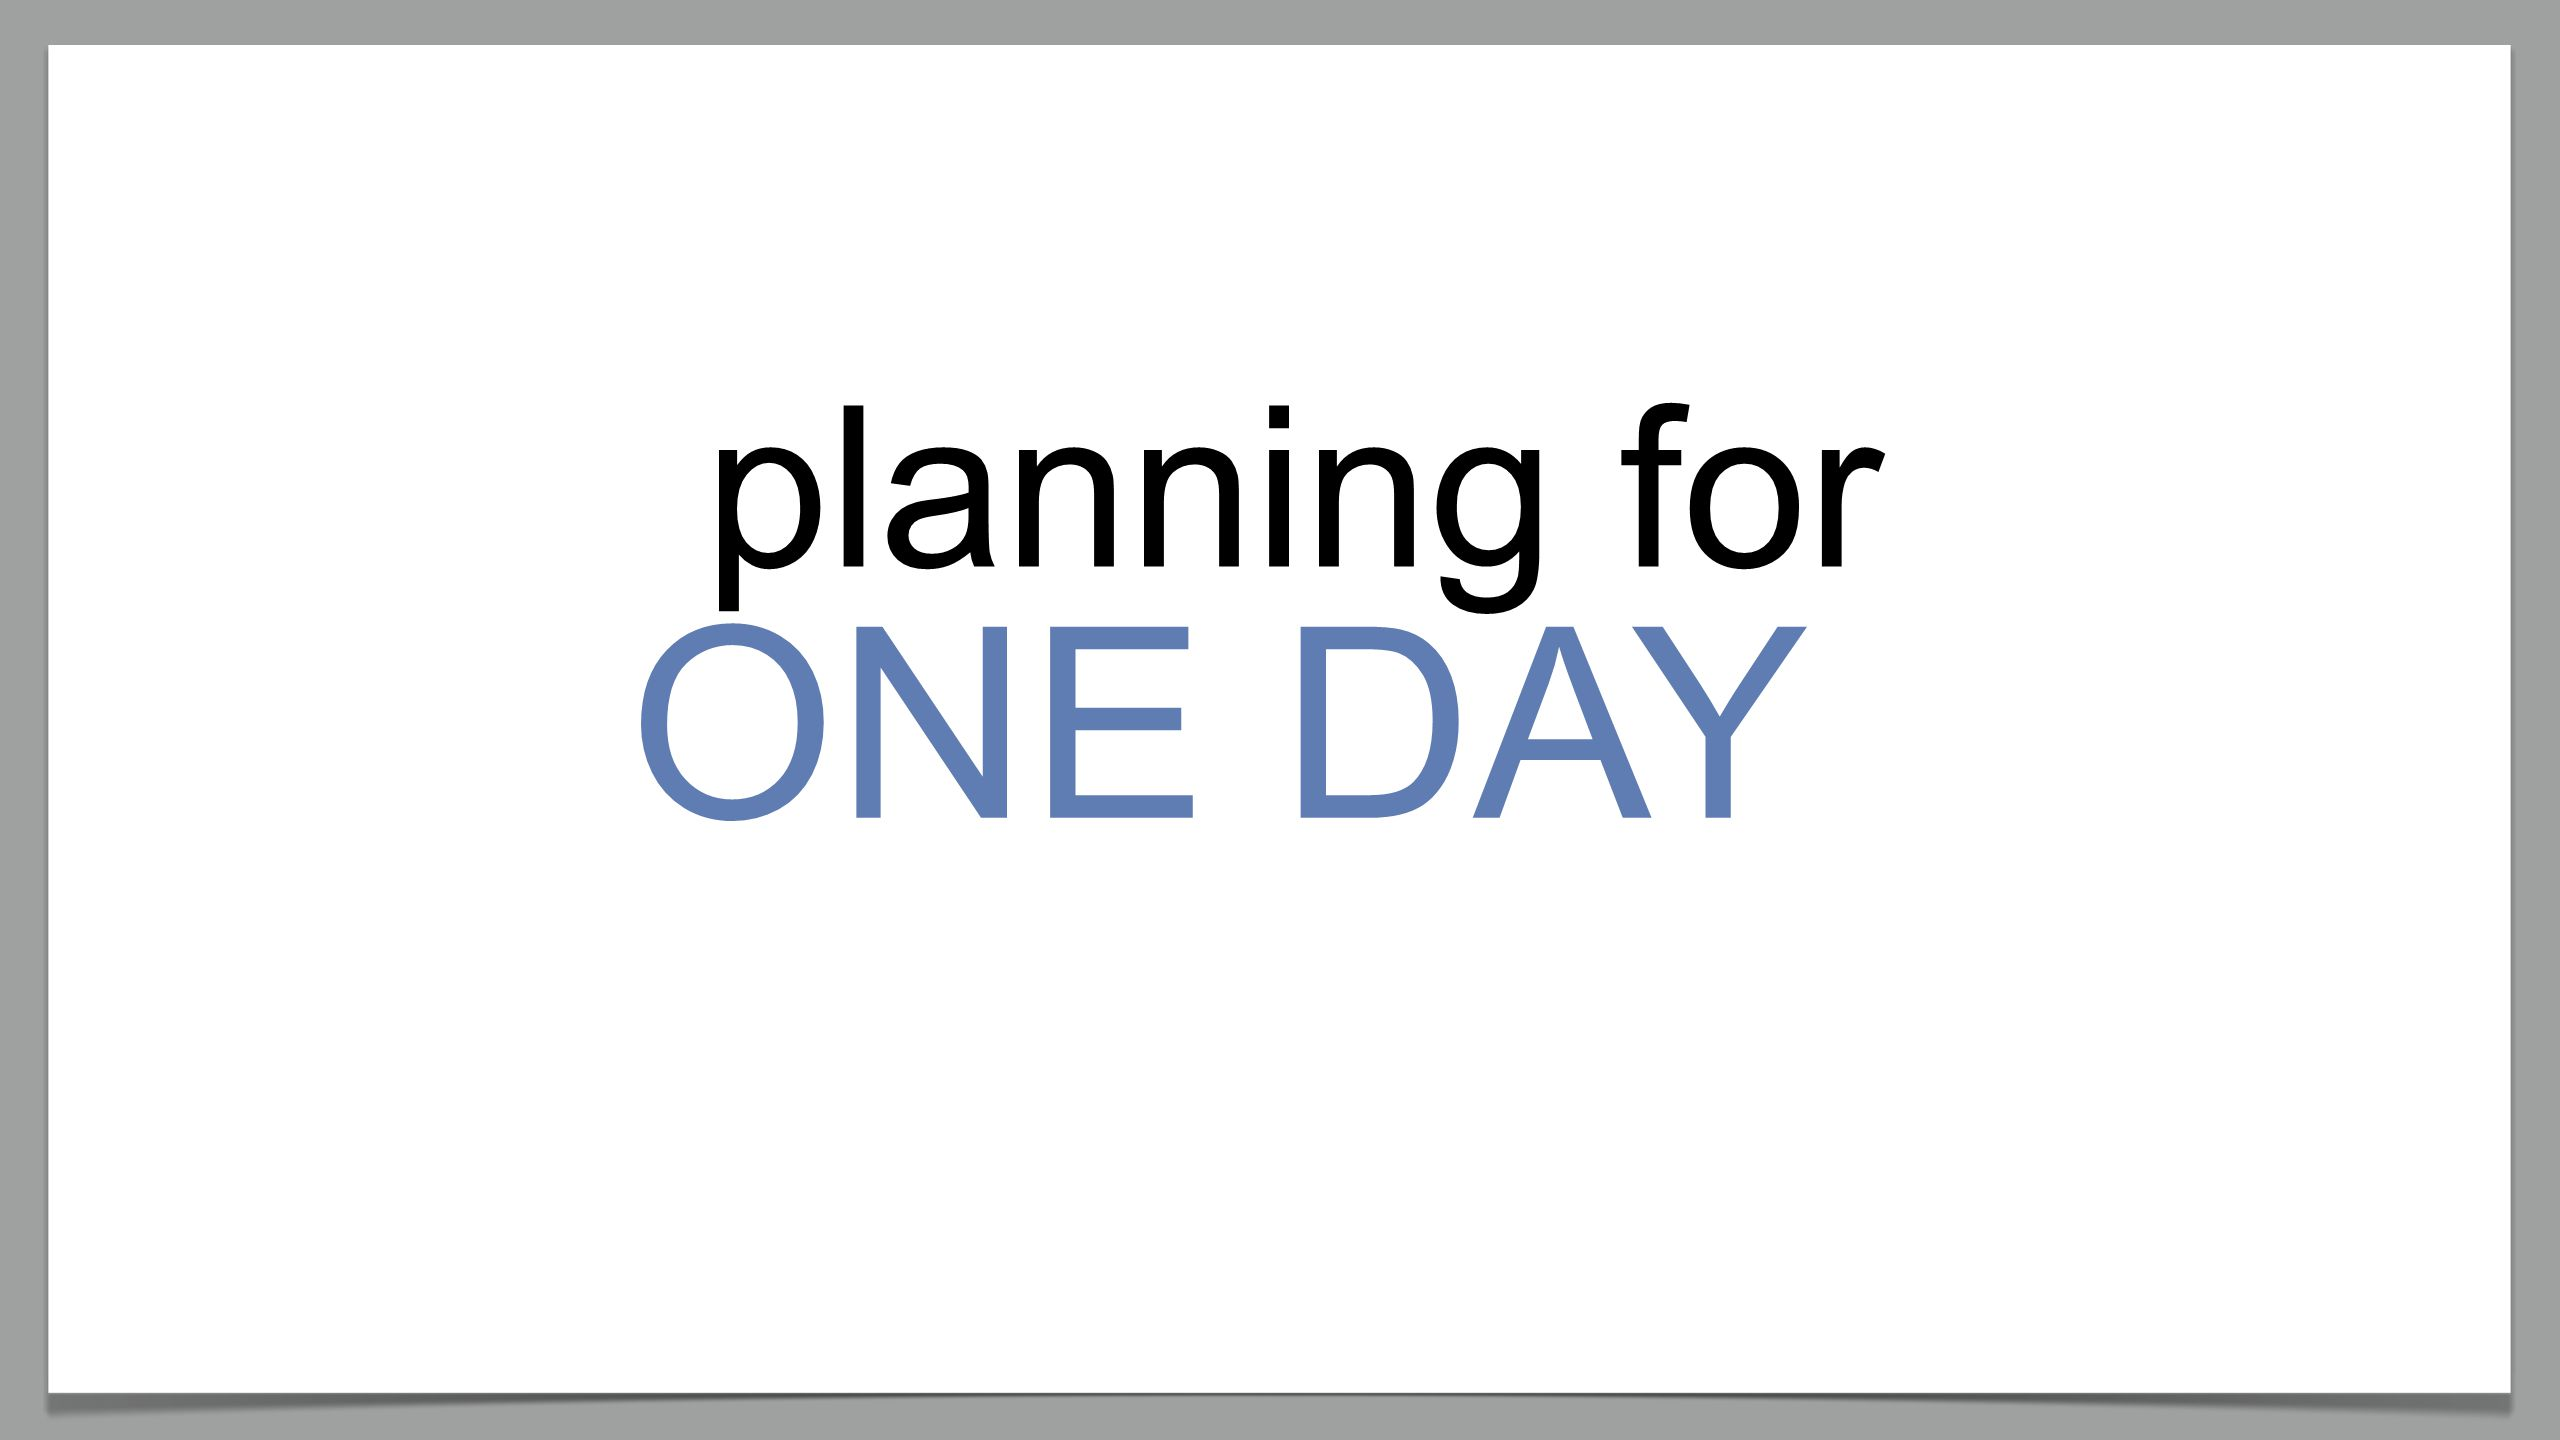 ONE DAY planning for